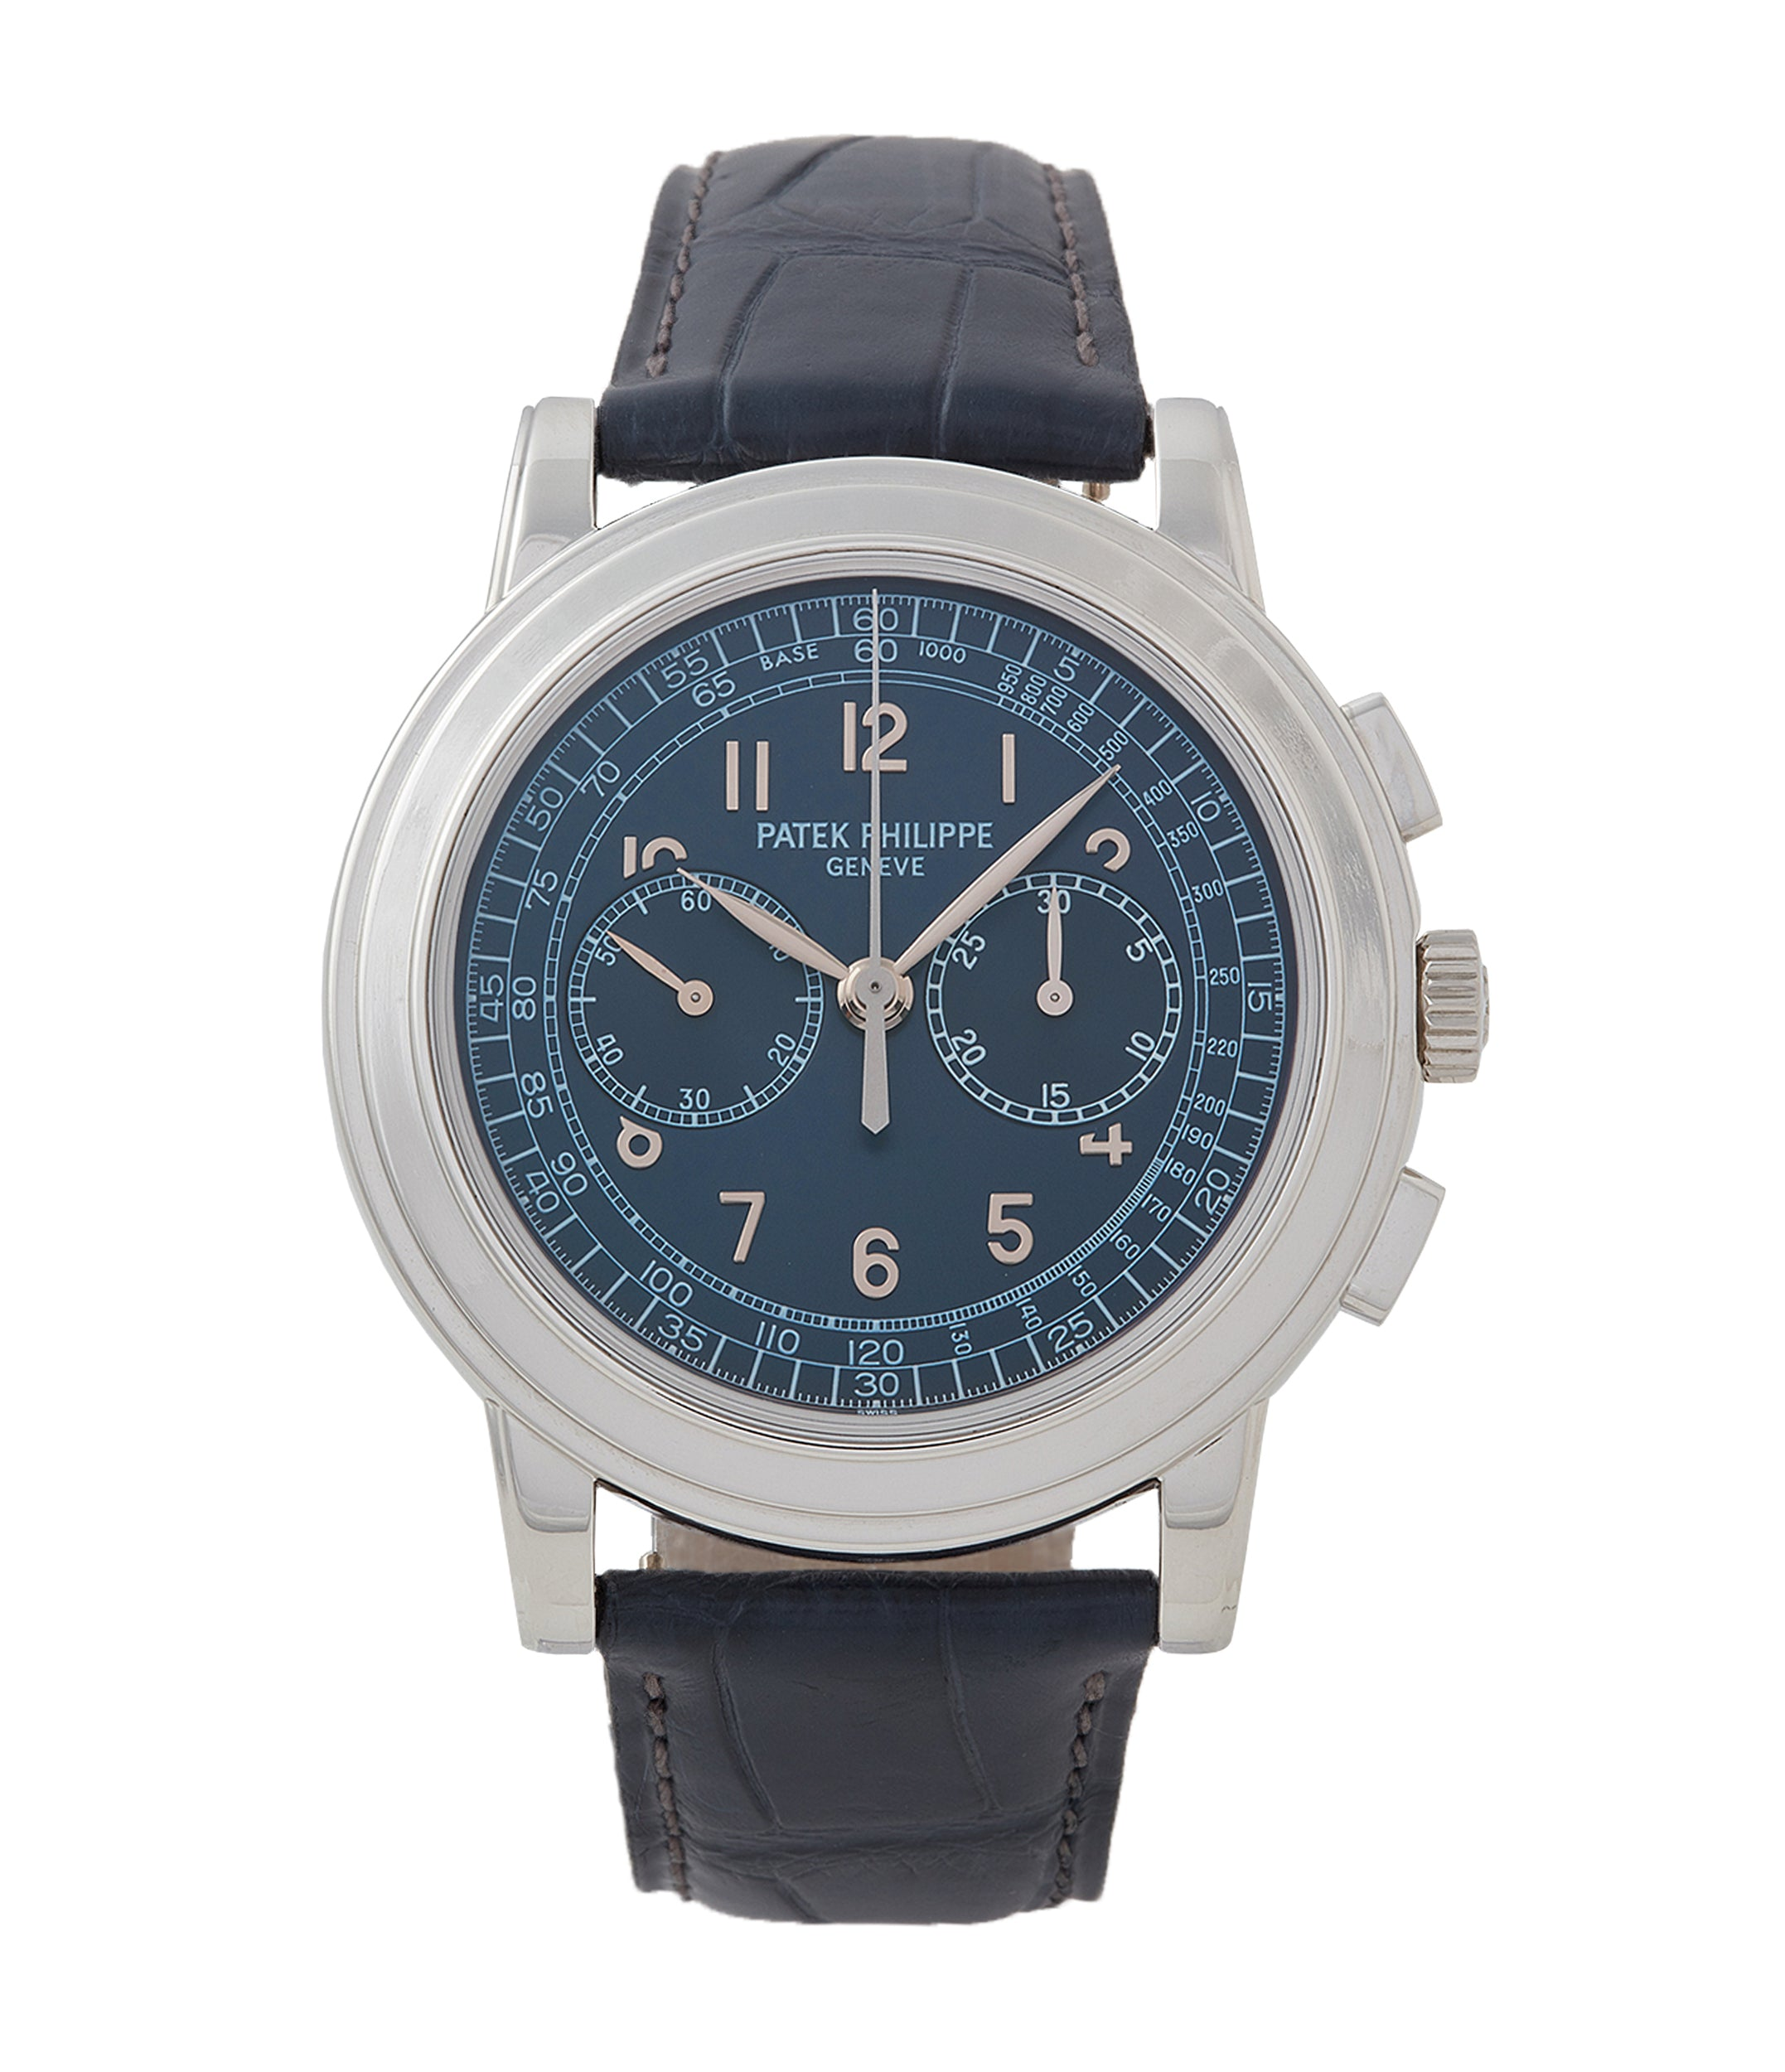 buy Patek Philippe 5070P Chronograph blue dial dress watch for sale online at A Collected Man London UK specialist of rare watches